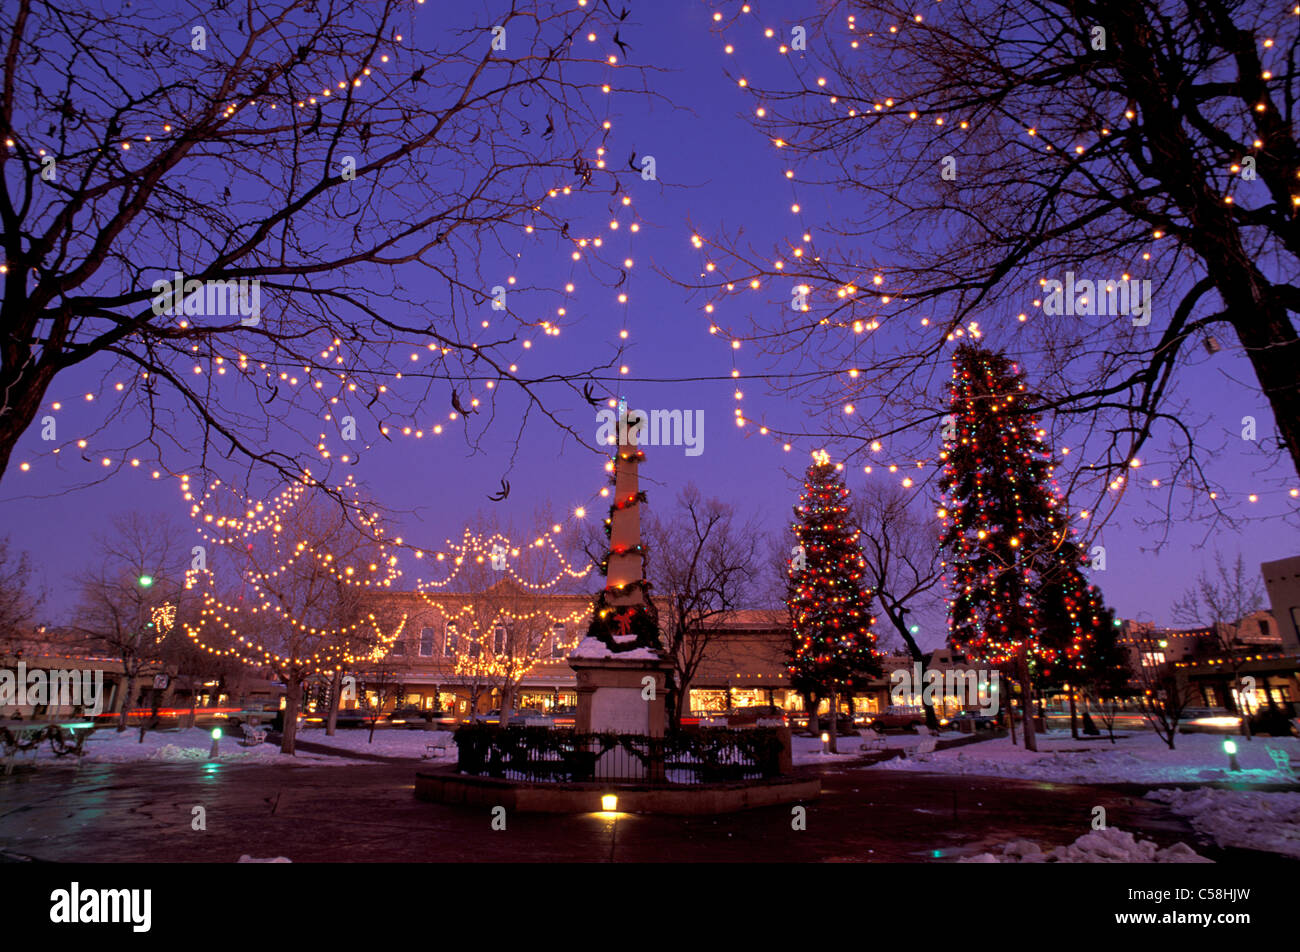 Christmas Lights Plaza Santa Fe New Mexico Usa United States Stock Photo Alamy